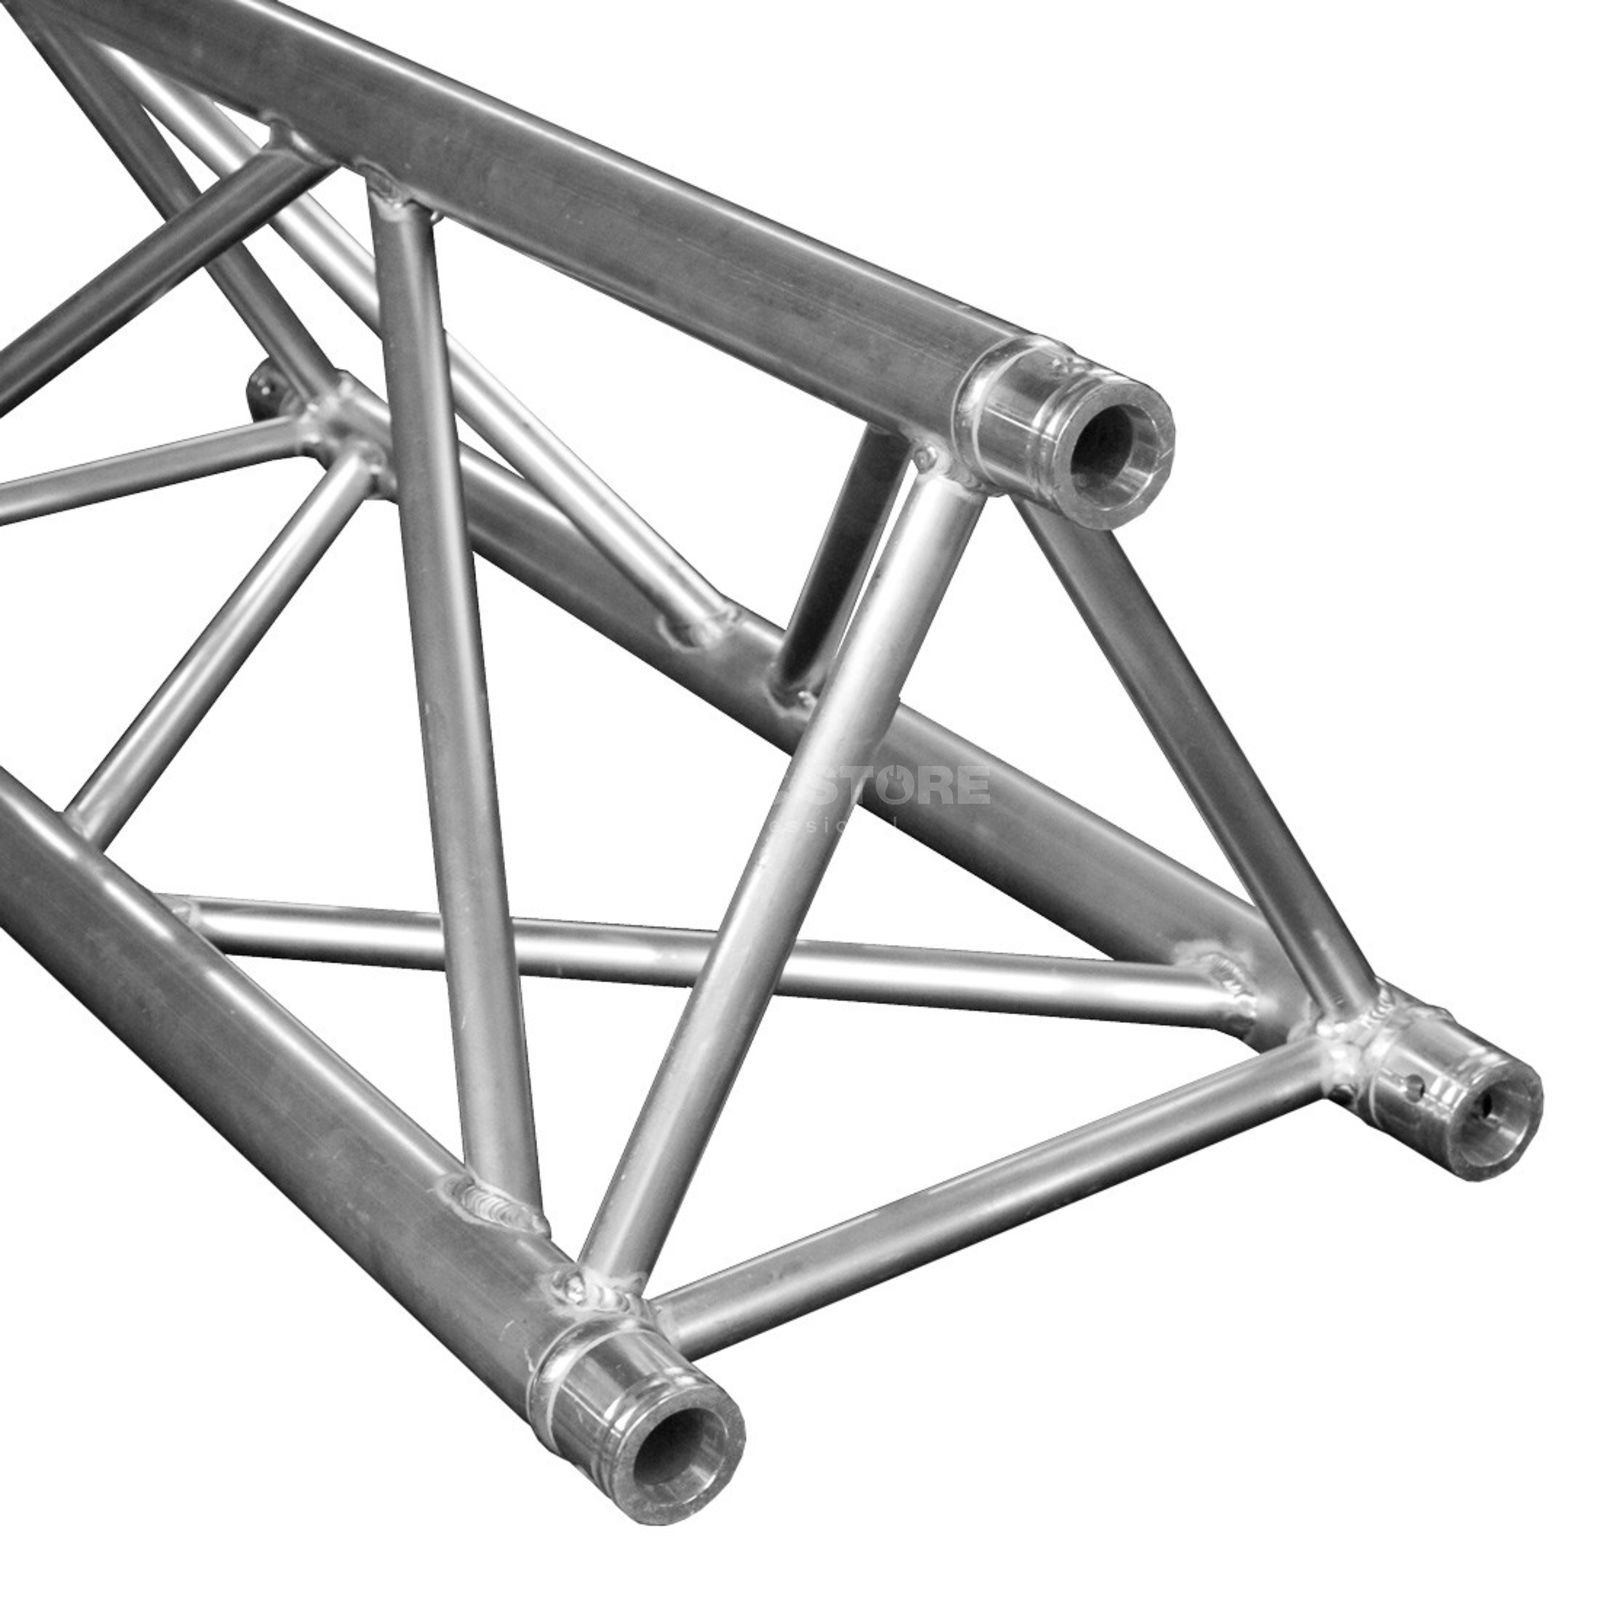 DURATRUSS DT 43-200, 3-Point Truss 2.0 m incl.  Conical Coupler Produktbillede